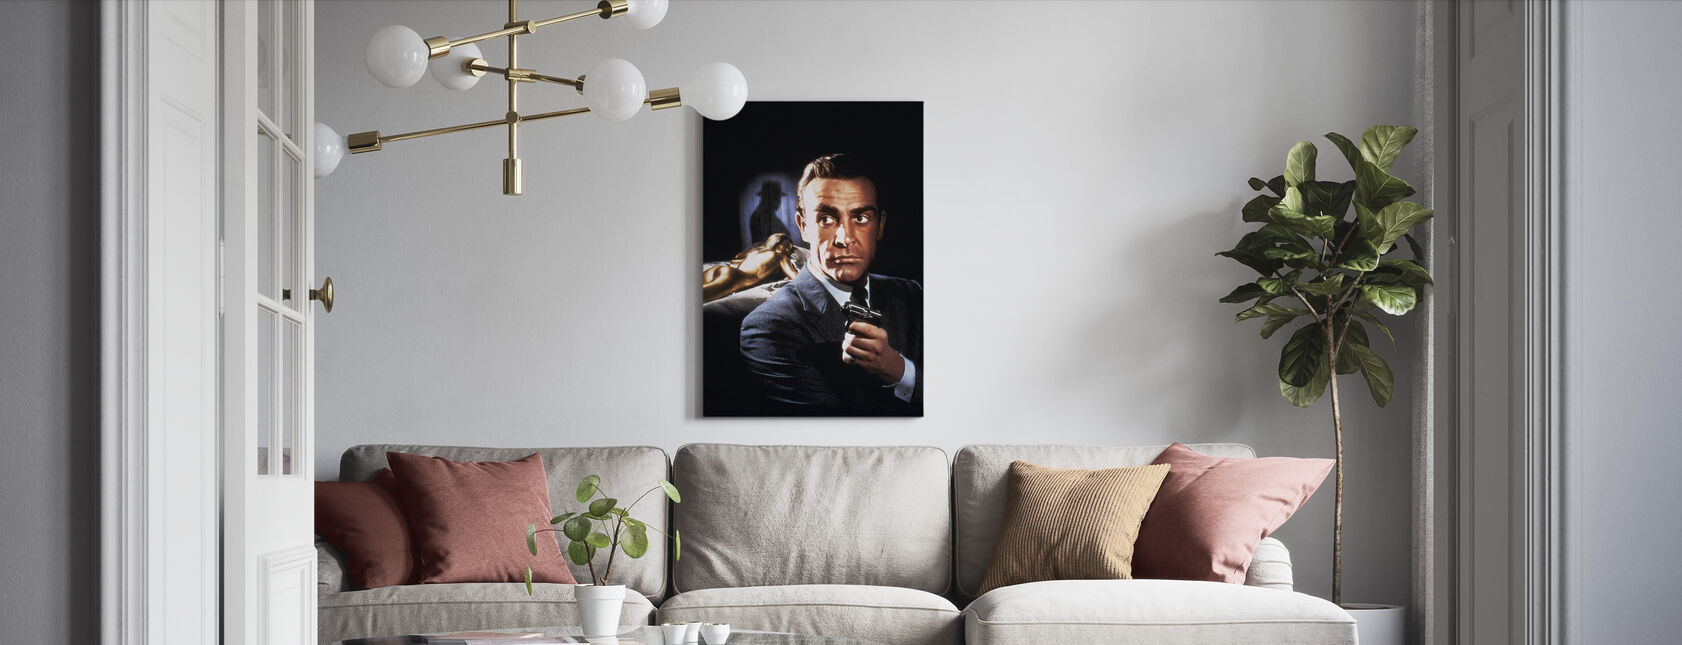 Sean Connery in 007 Goldfinger - Canvas print - Living Room